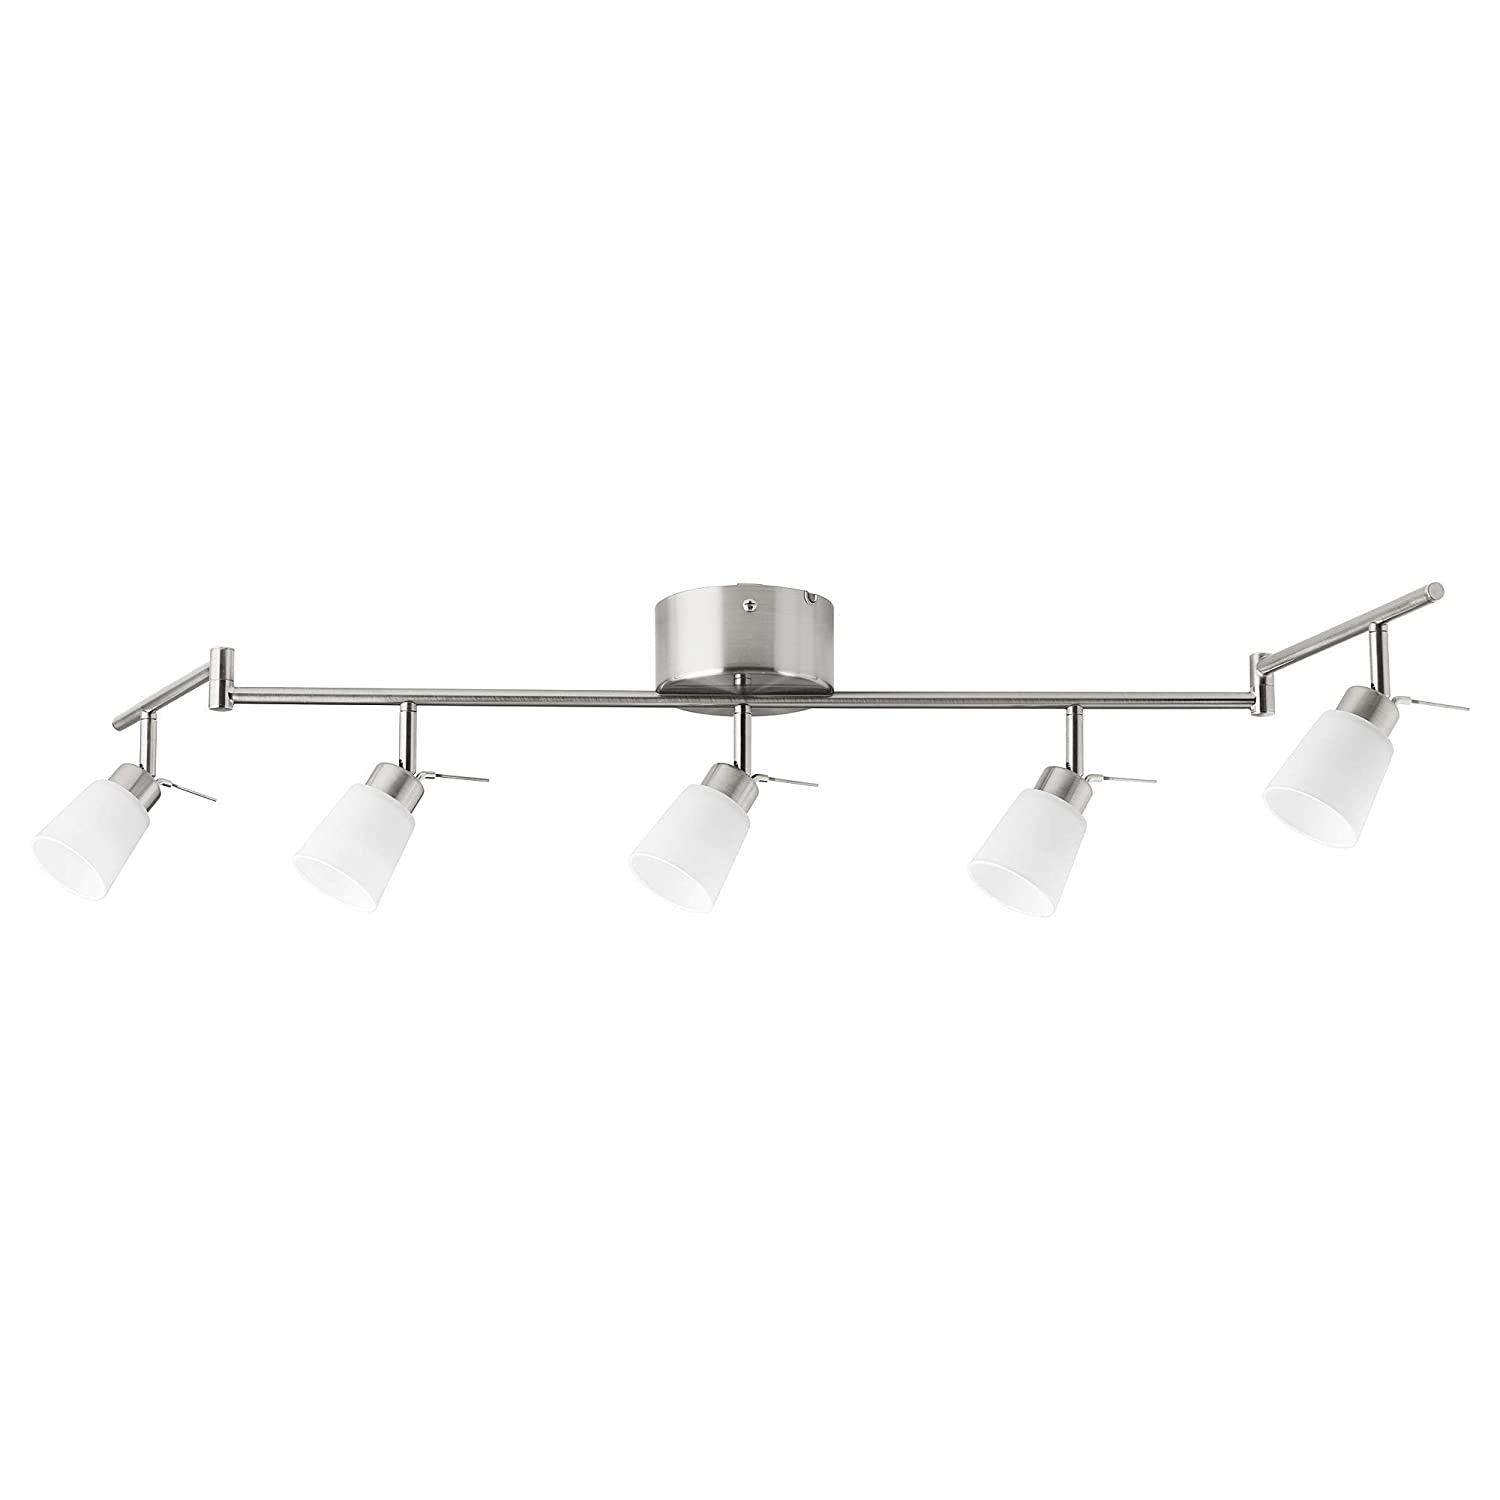 IKEA 002.626.57 Tidig Ceiling Light with 5 Spotlights Nickel Plated